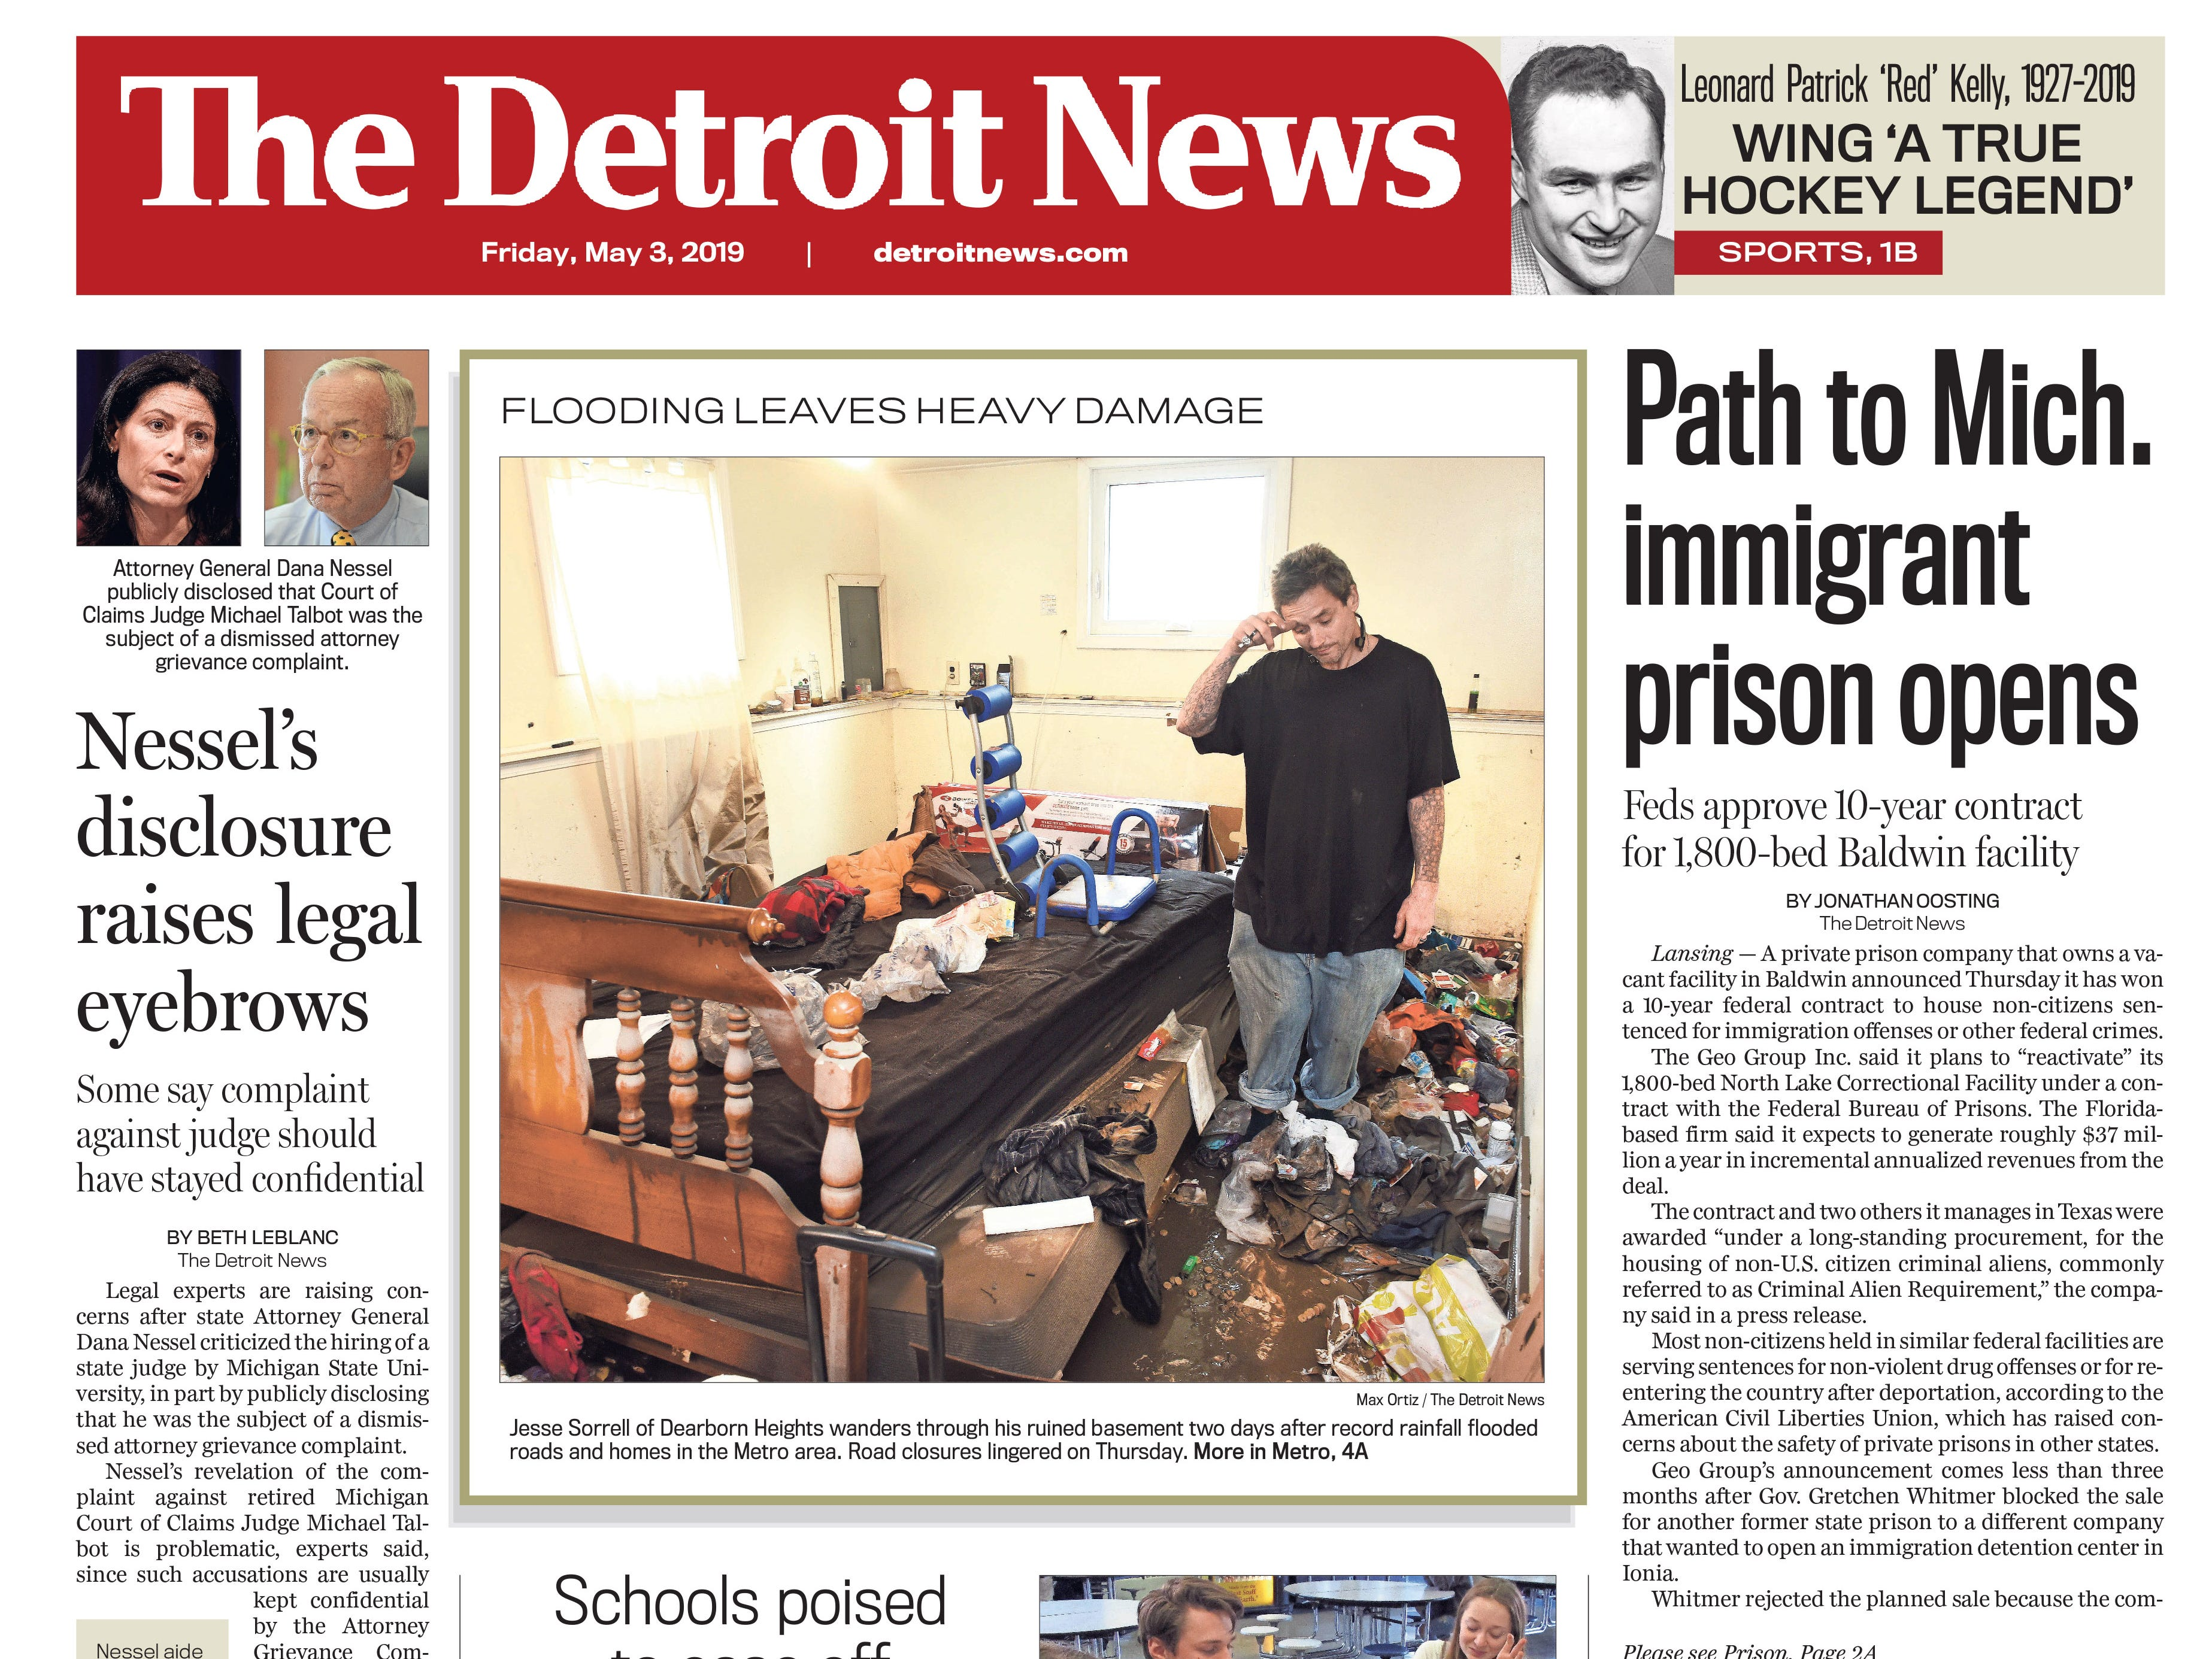 The front page of the Detroit News on Friday, May 3, 2019.